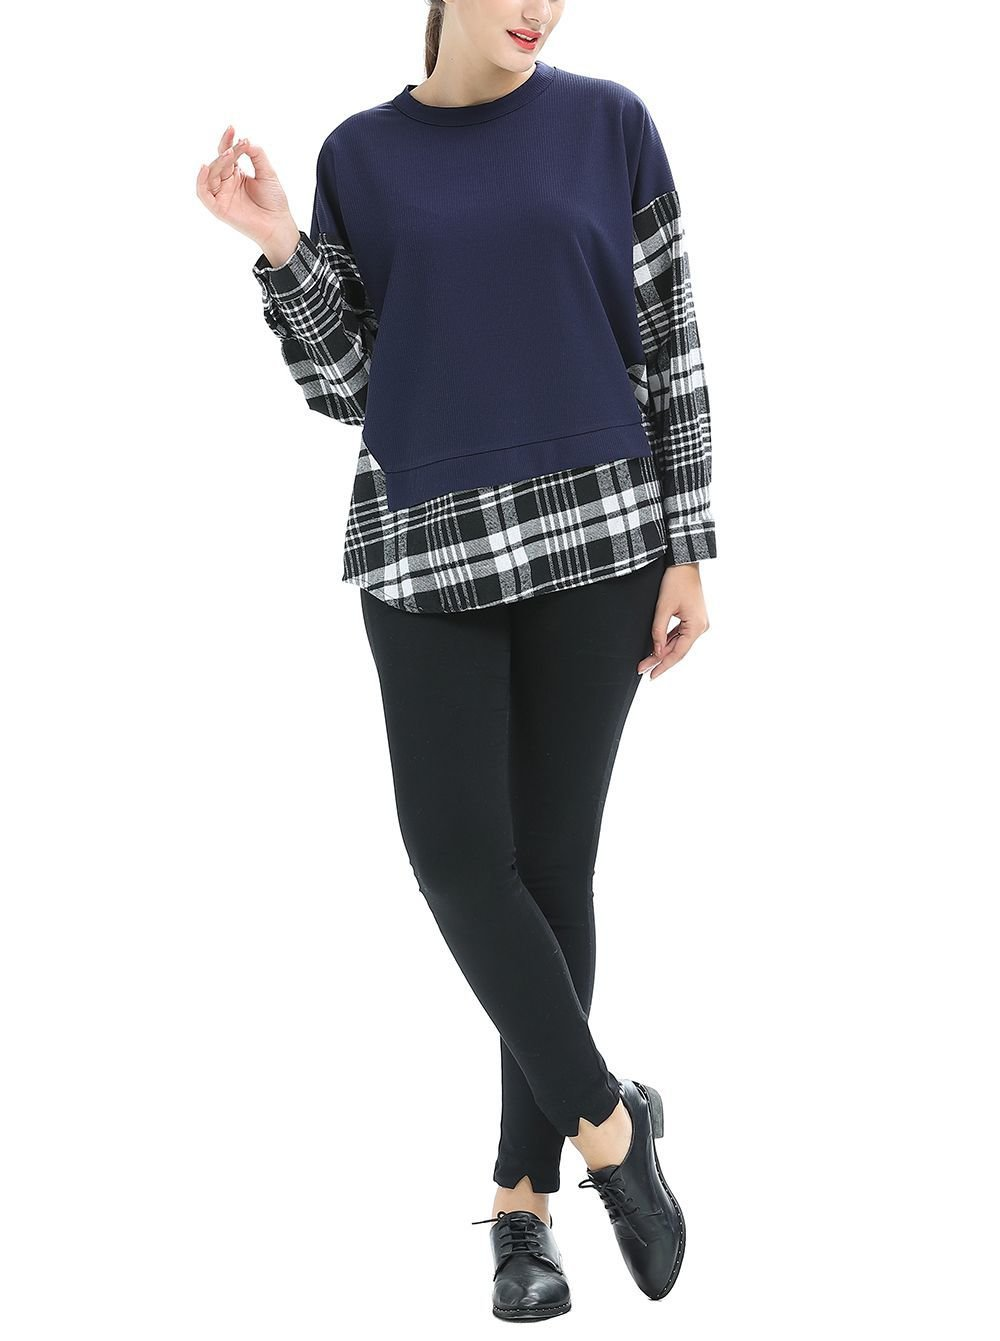 Knit Tee with Plaid Sleeves in Large Sizes